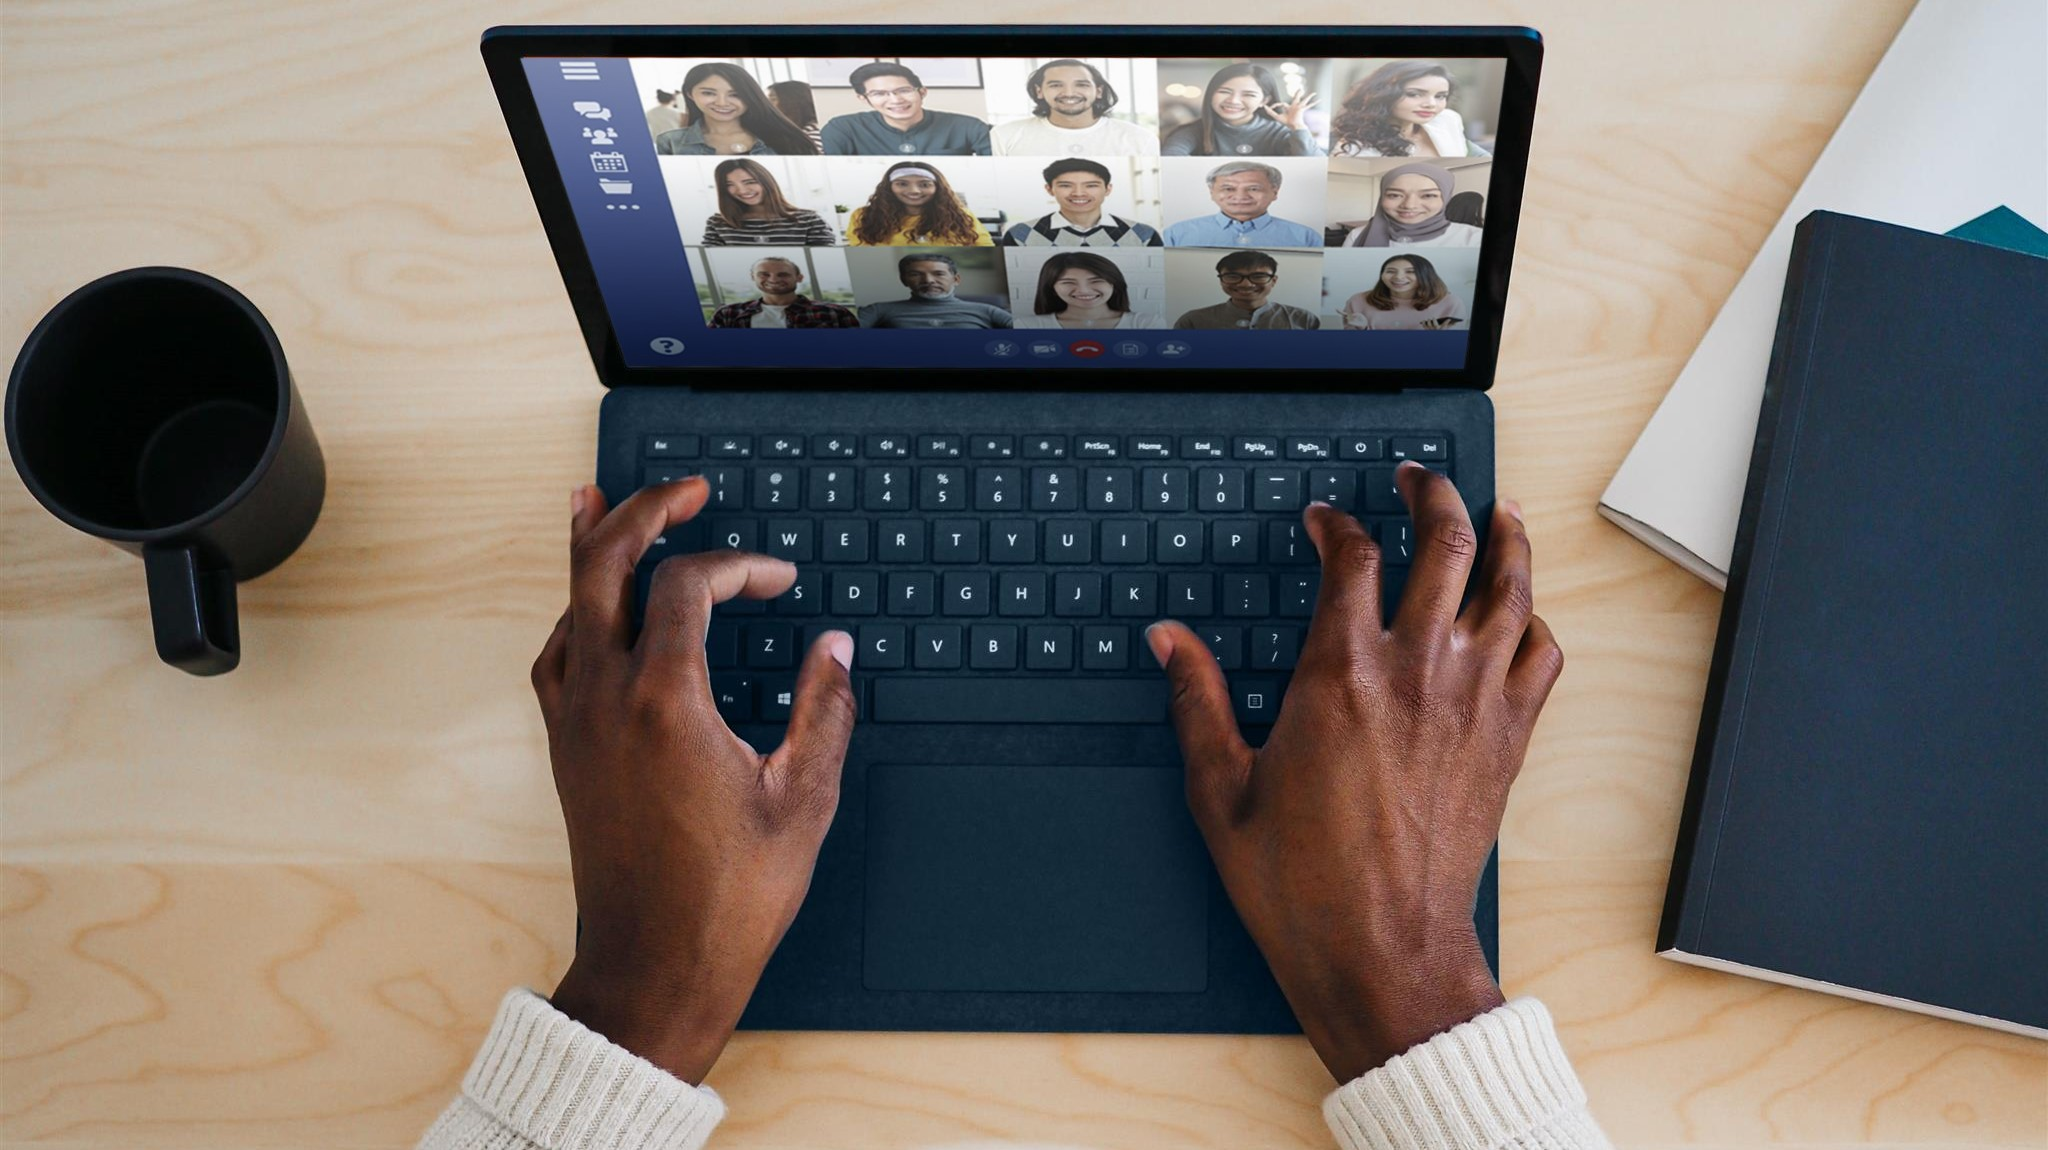 A person doing a video call with multiple other people.